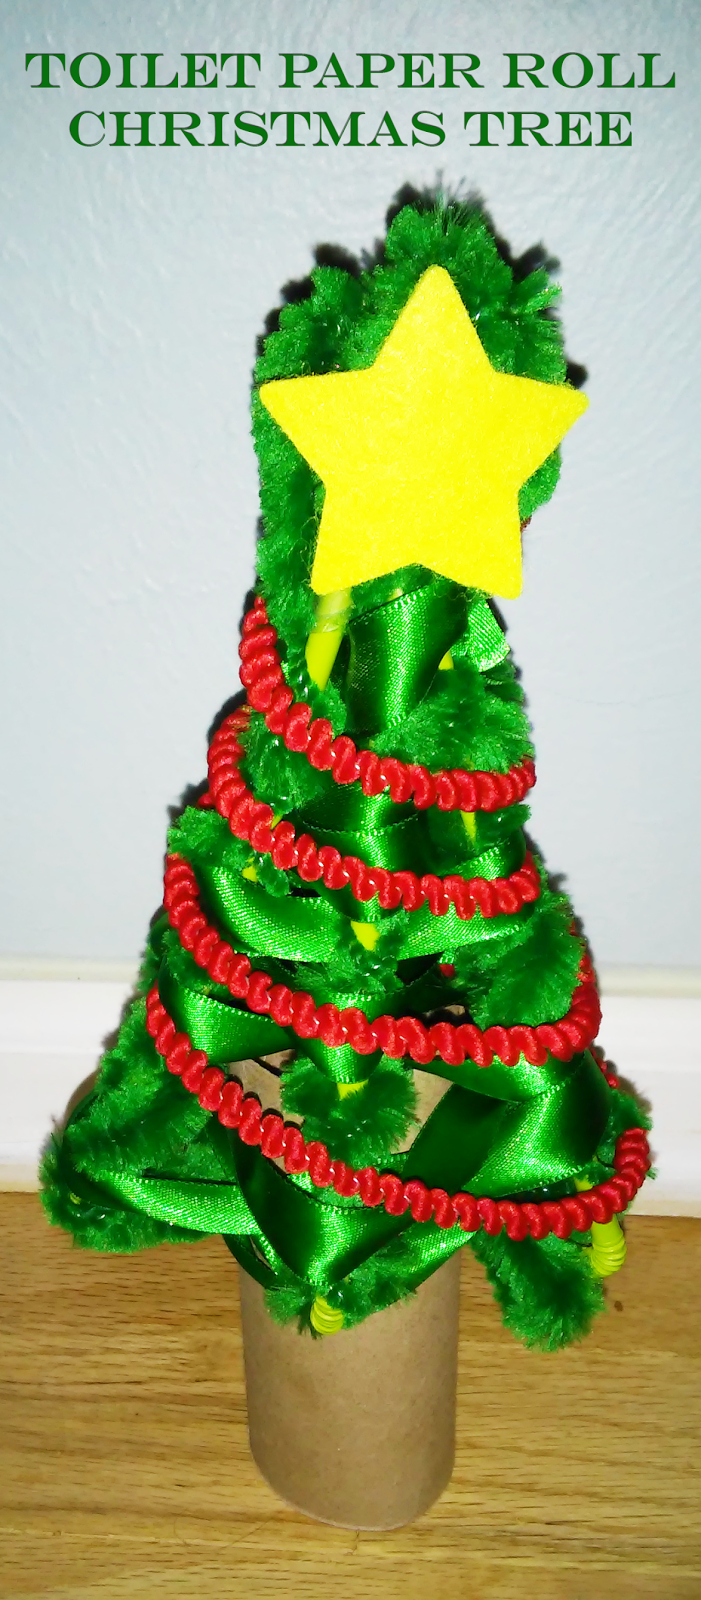 Toilet Paper Tube Christmas Tree Craft and #GIFtaTree ...